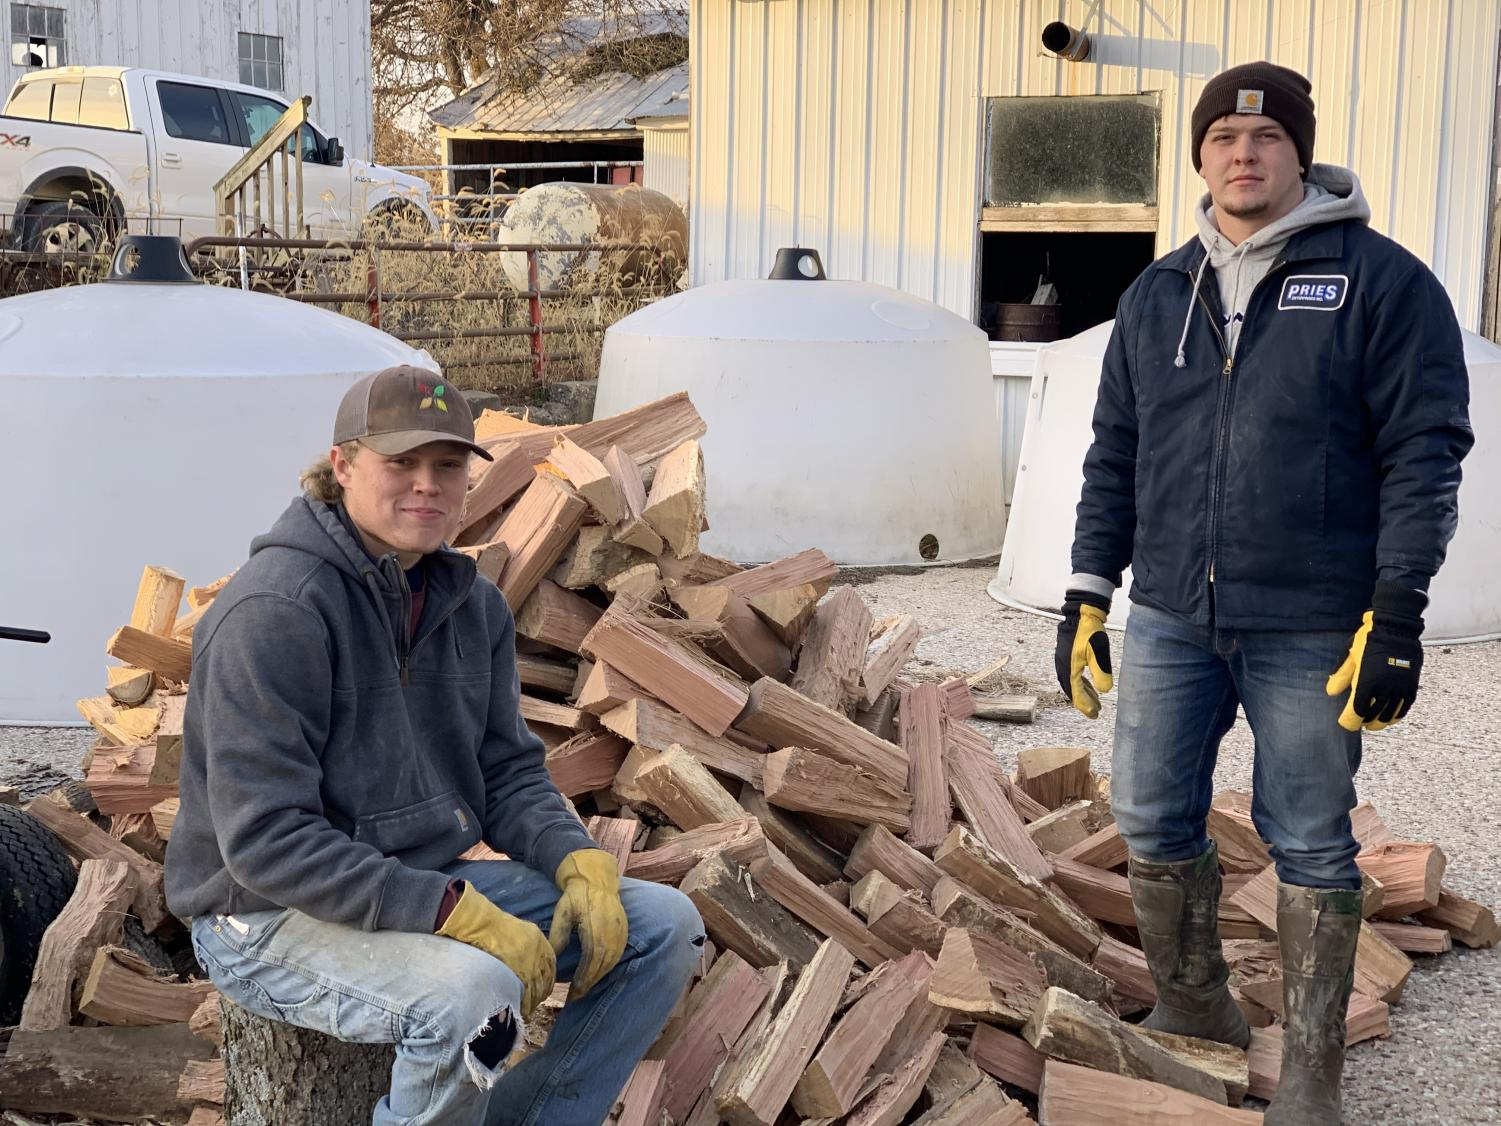 Trevor Ellison, junior, and Max Shady, senior, pose next to a pile of wood they  just cut.